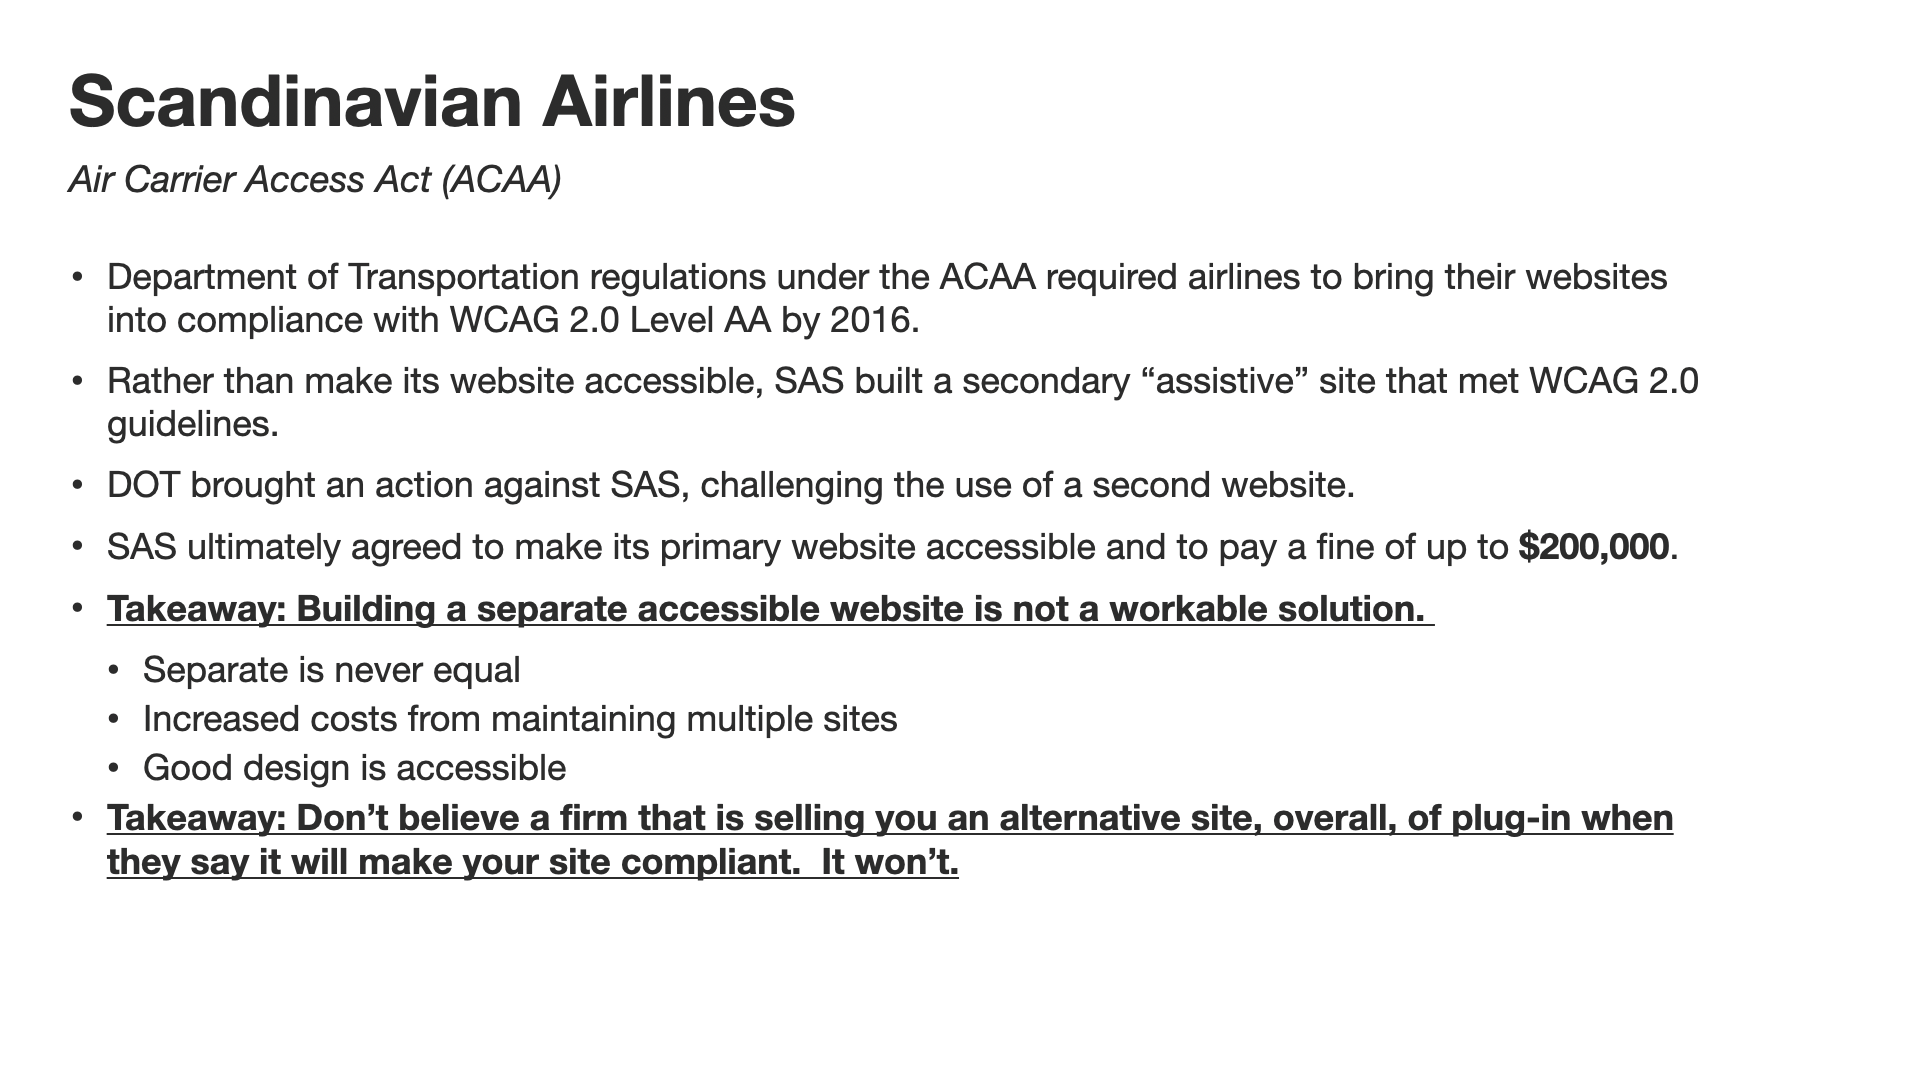 Legal slide regarding Scandinavian Airlines and the Air Carrier Access Act.